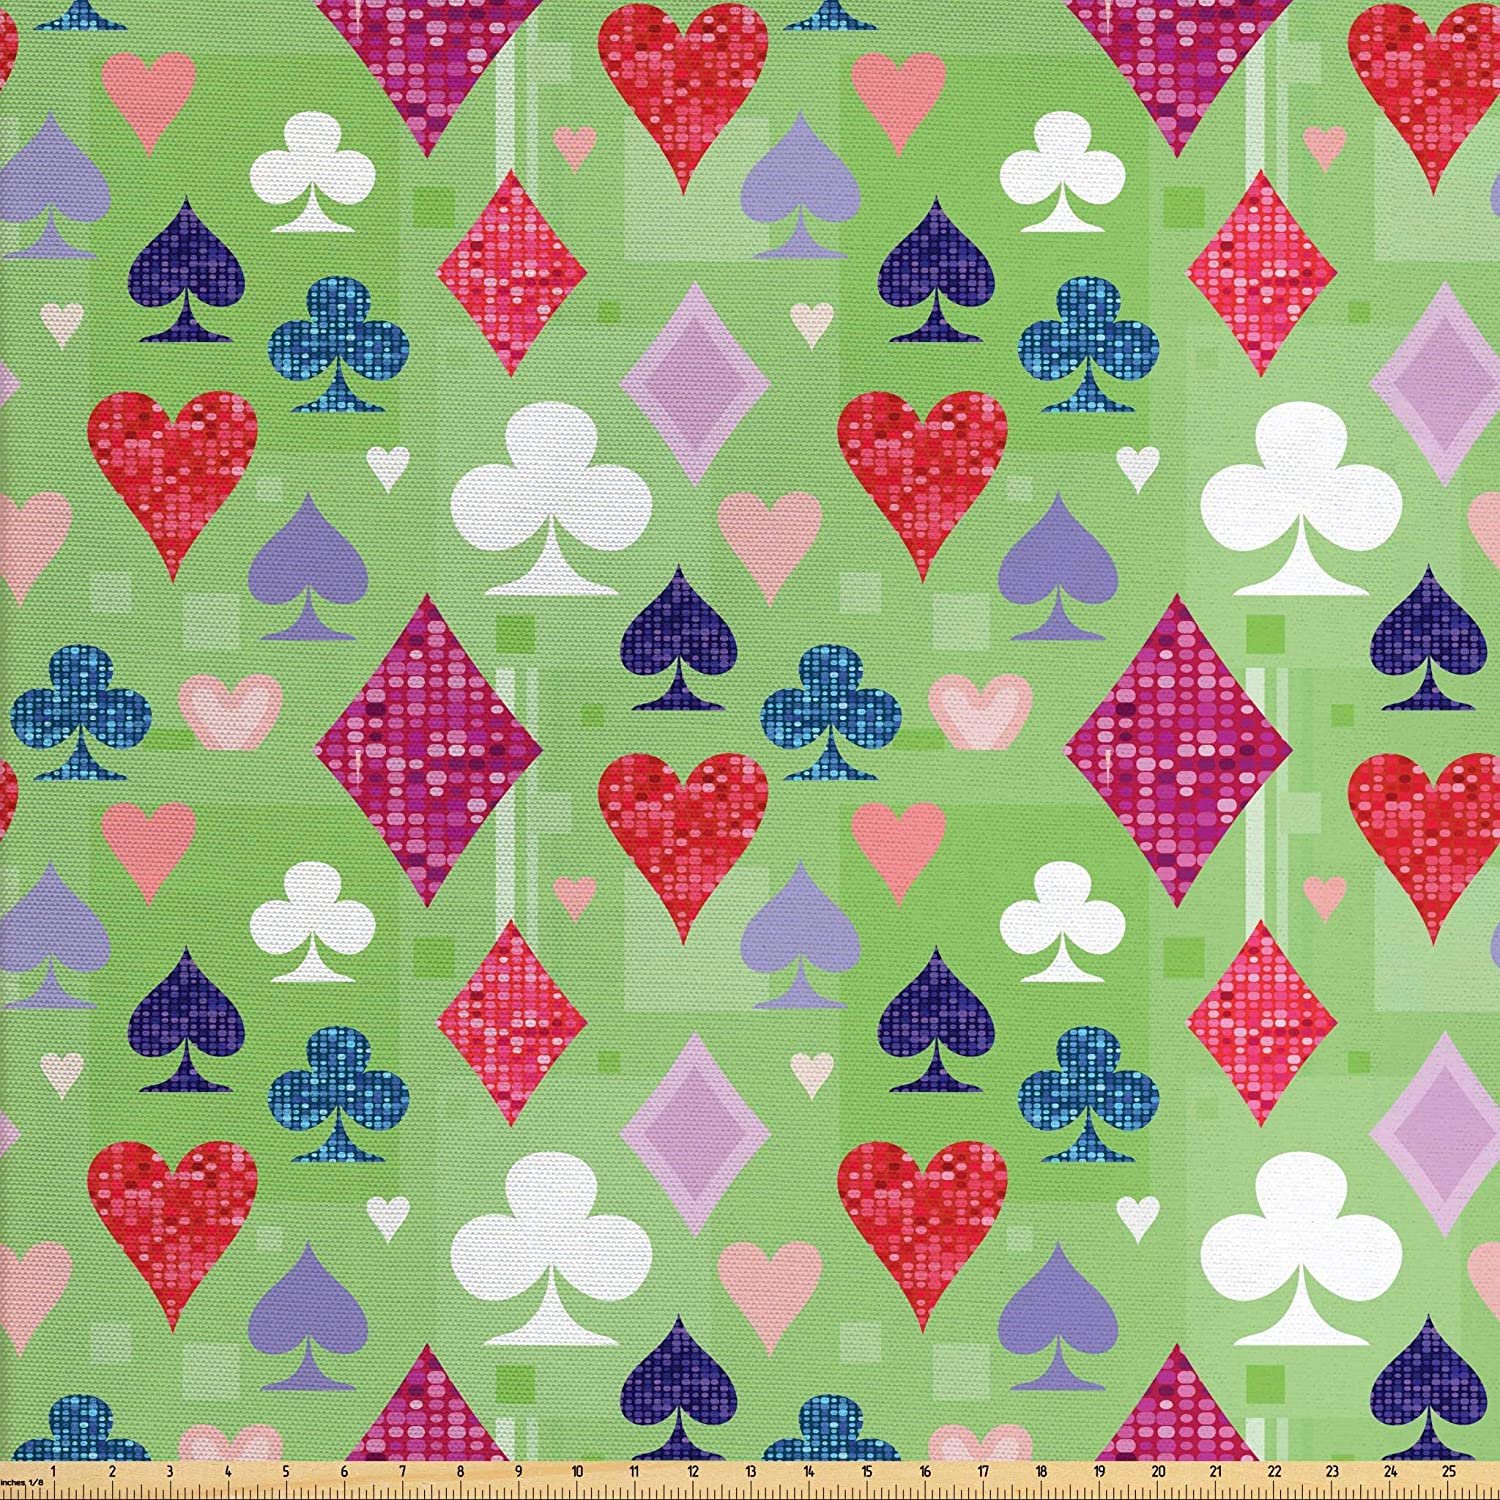 Lunarable Casino Fabric by The Yard, Vibrant Colored Differents of Playing Cards Poker Gamble Club Casino, Decorative Fabric for Upholstery and Home Accents, 2 Yards, Red Black